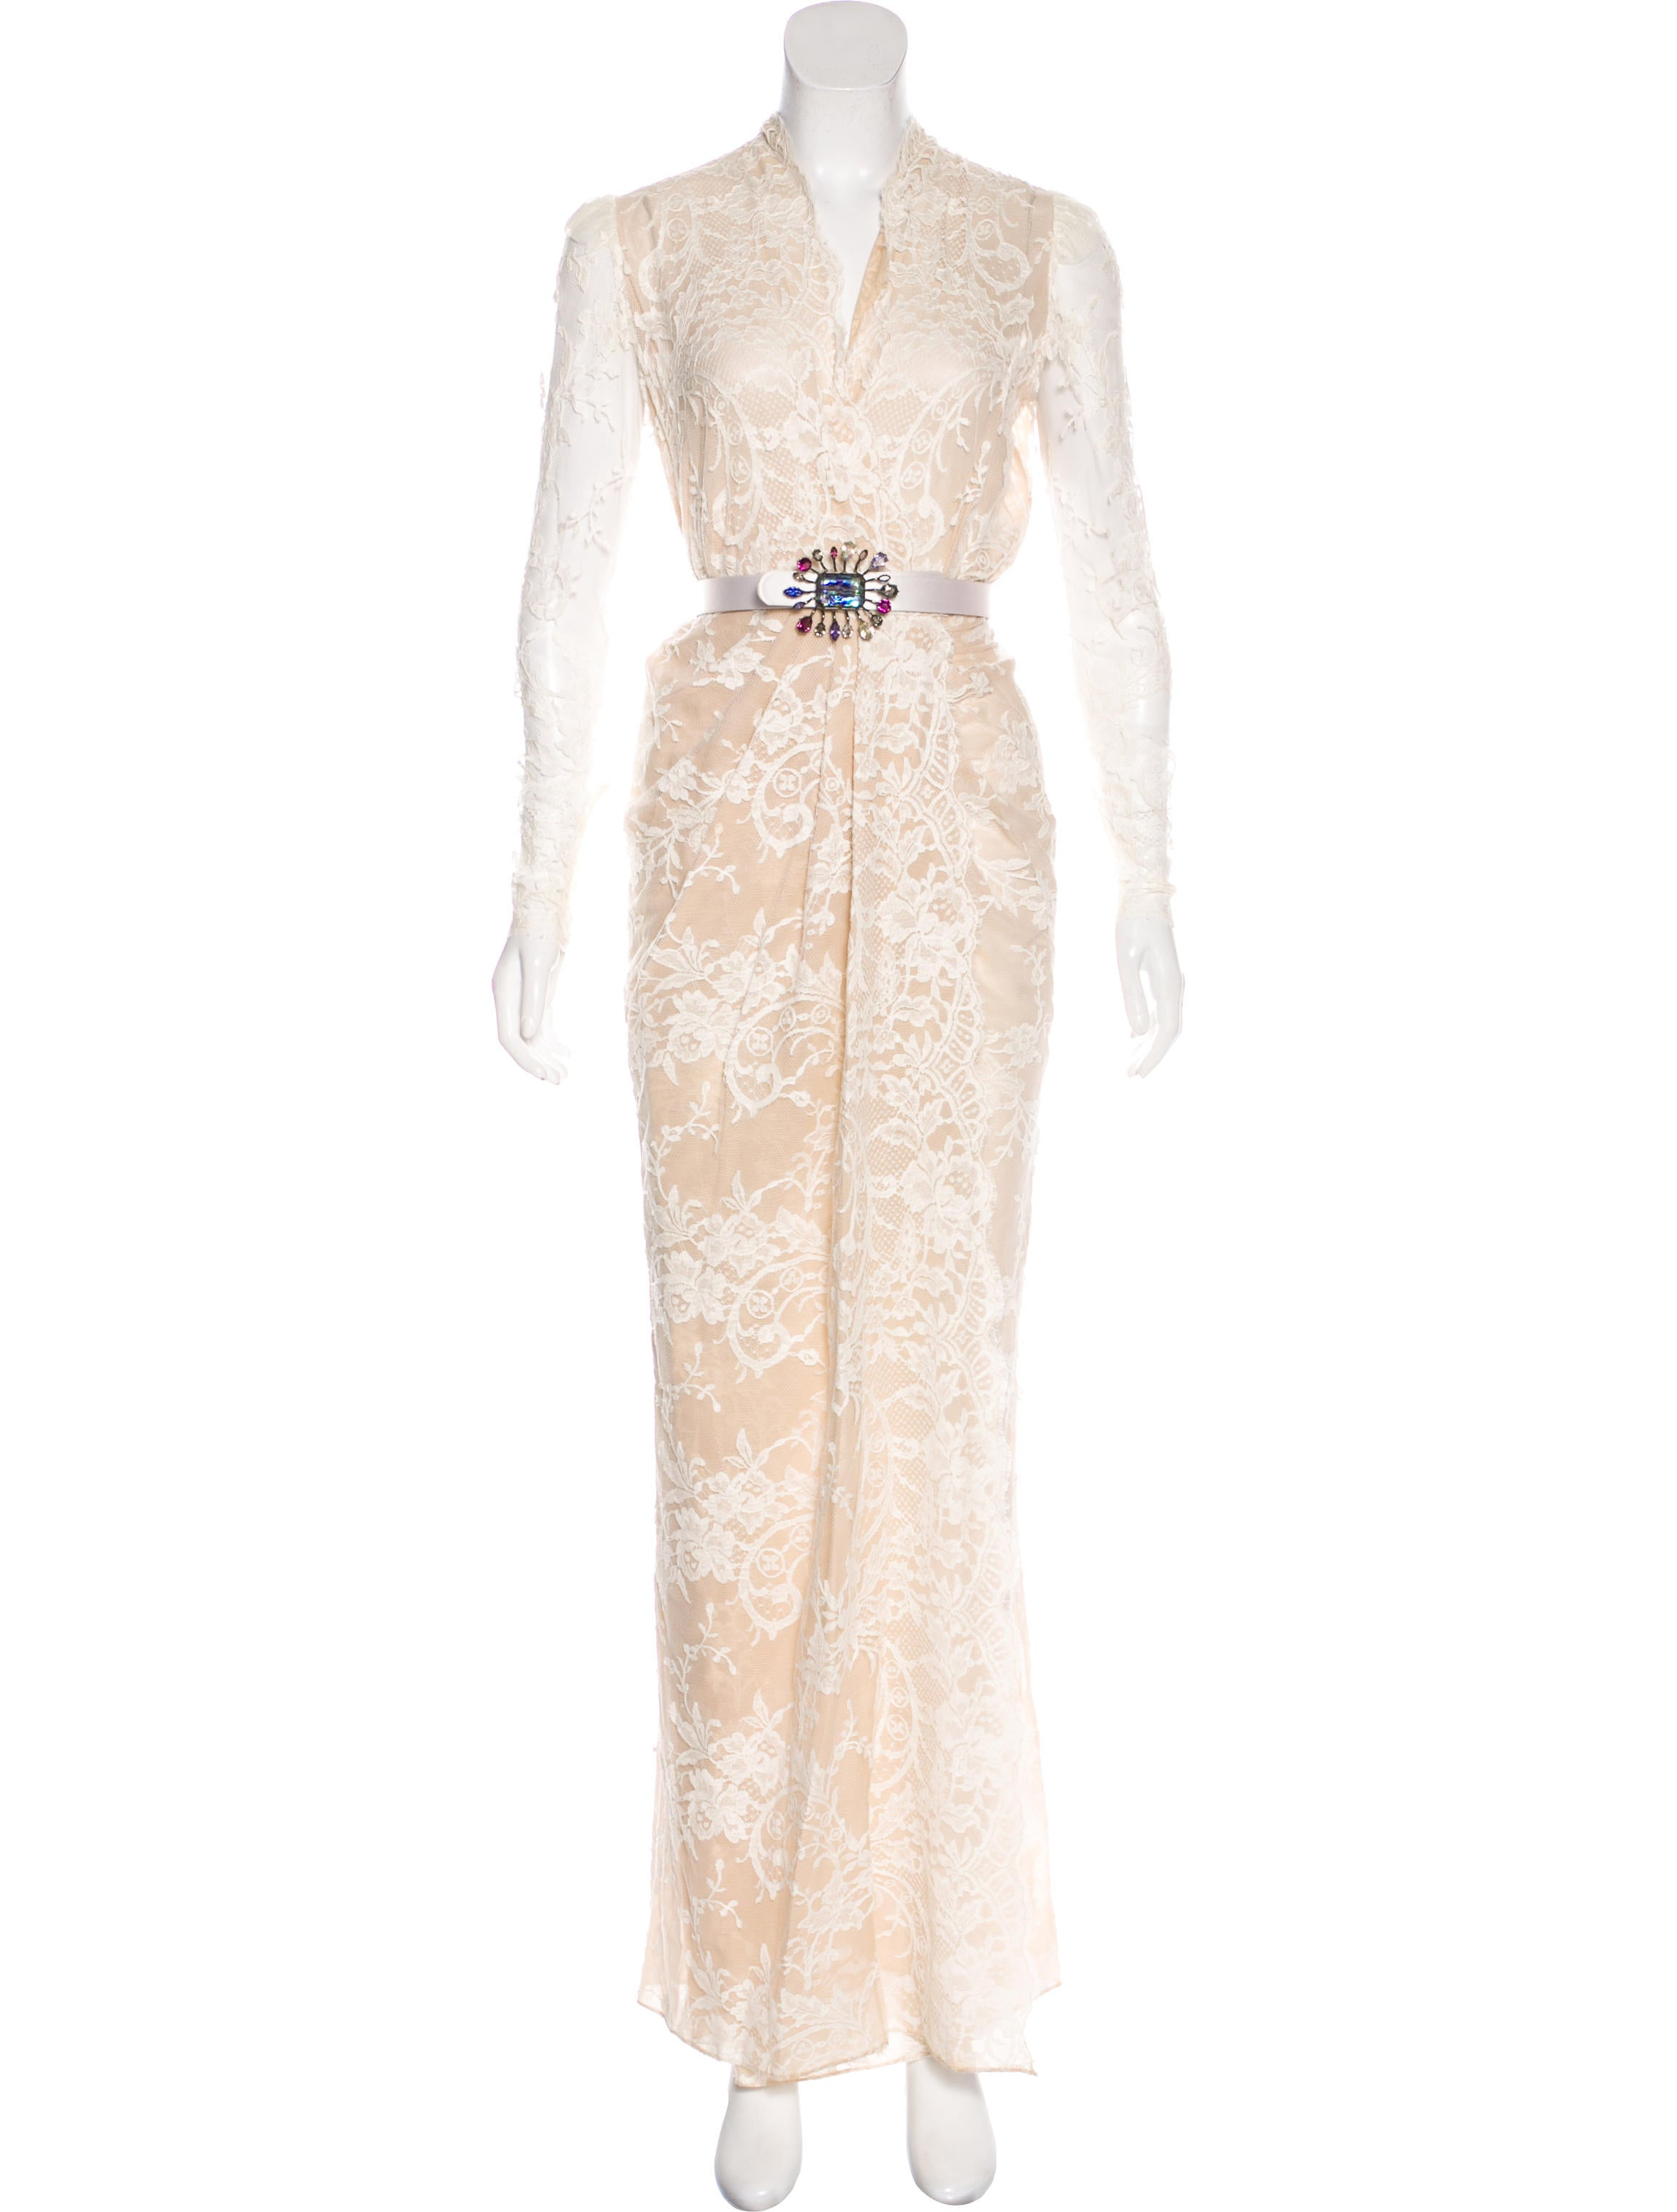 Alexander McQueen 2016 Sara Gown - Clothing - ALE53136 | The RealReal